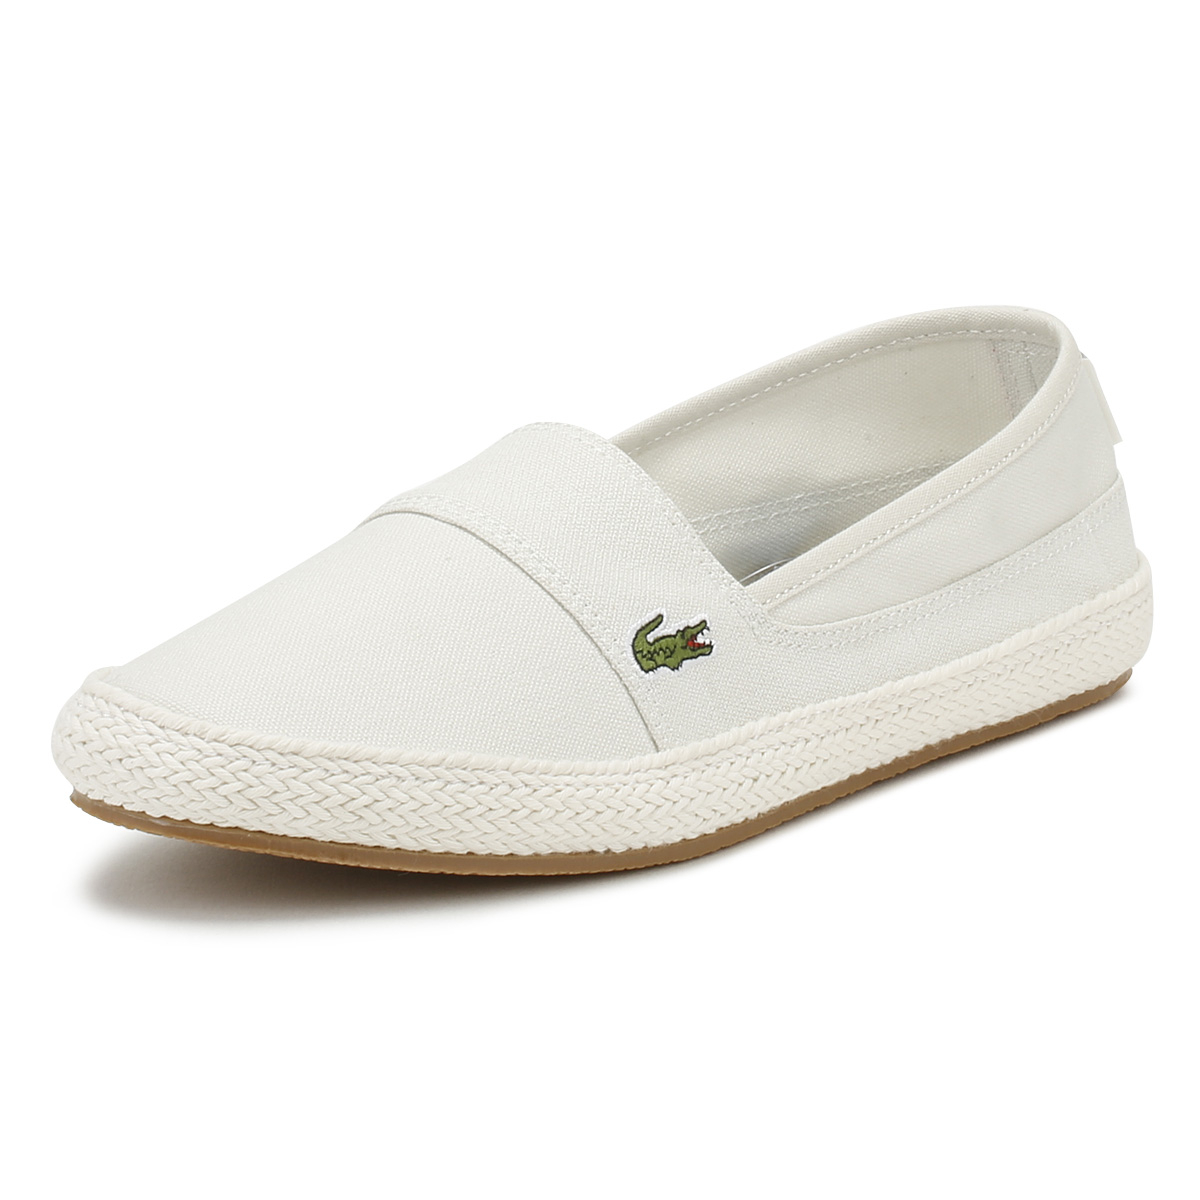 cc234fc8b Details about Lacoste Womens Flats White   Pink Marice 218 1 Espadrilles  Casual Shoes